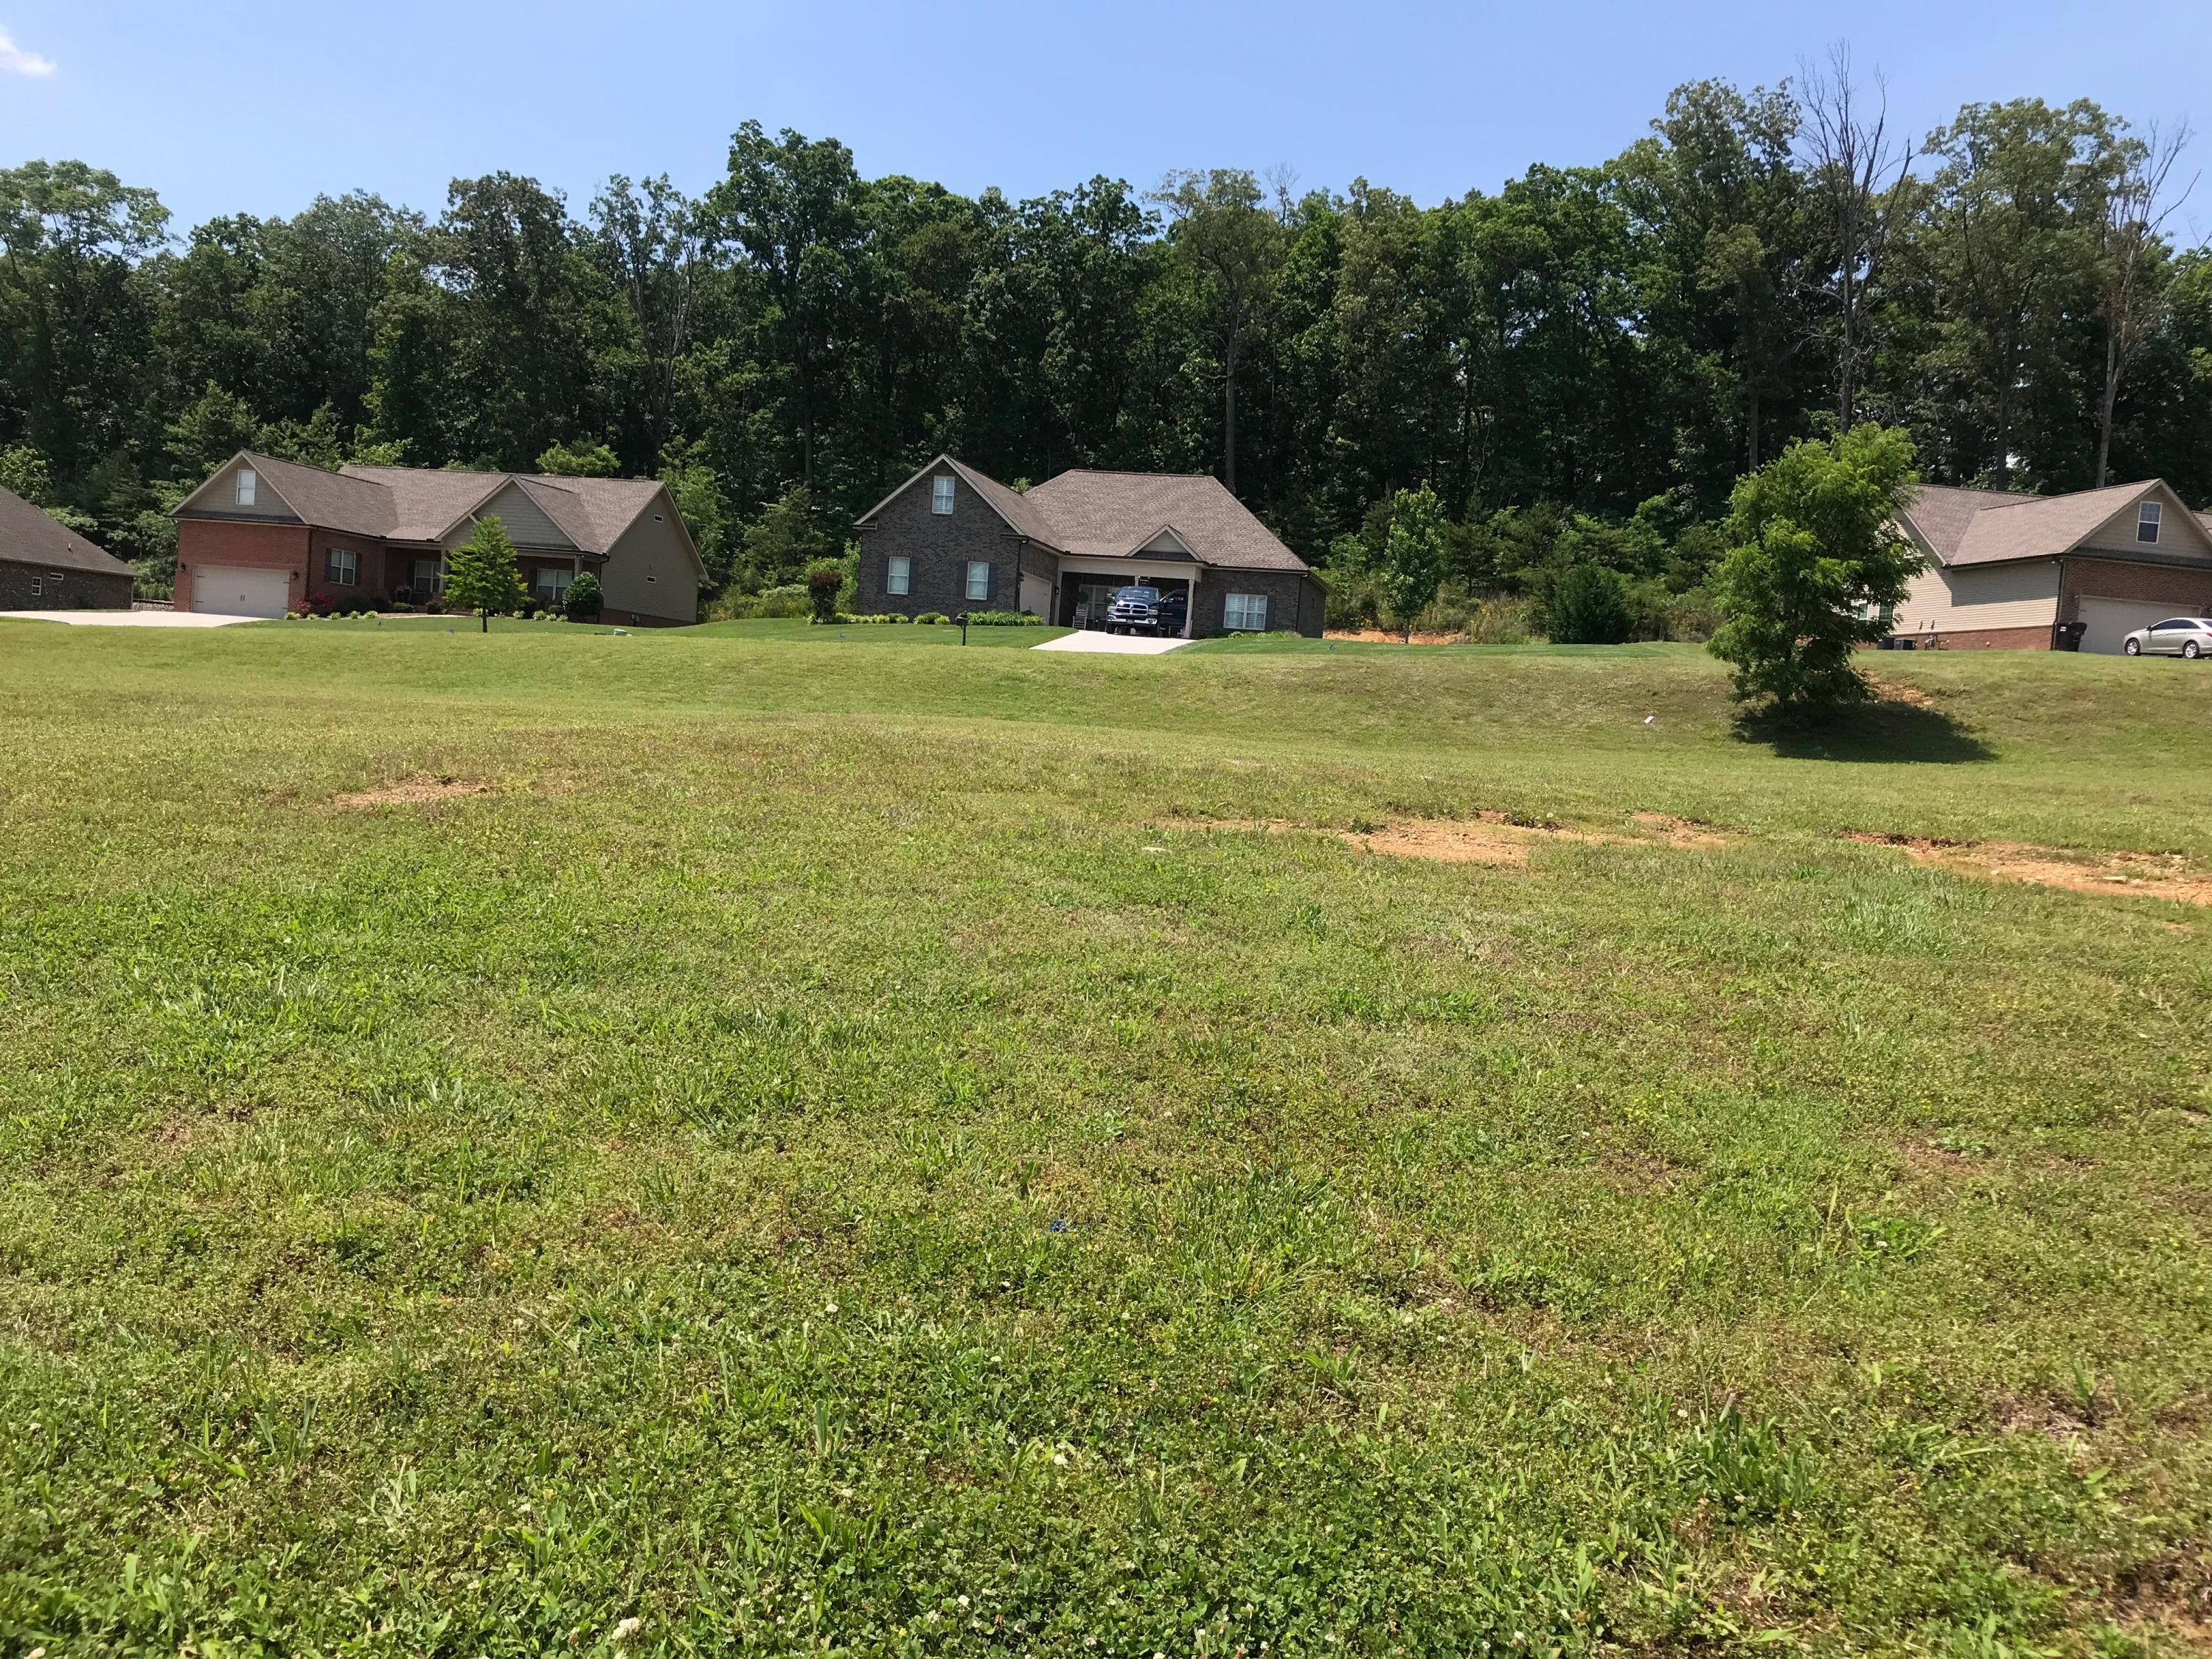 548 Jacksonian Way, Lenoir City, Tennessee 37772, ,Lots & Acreage,For Sale,Jacksonian,1080822